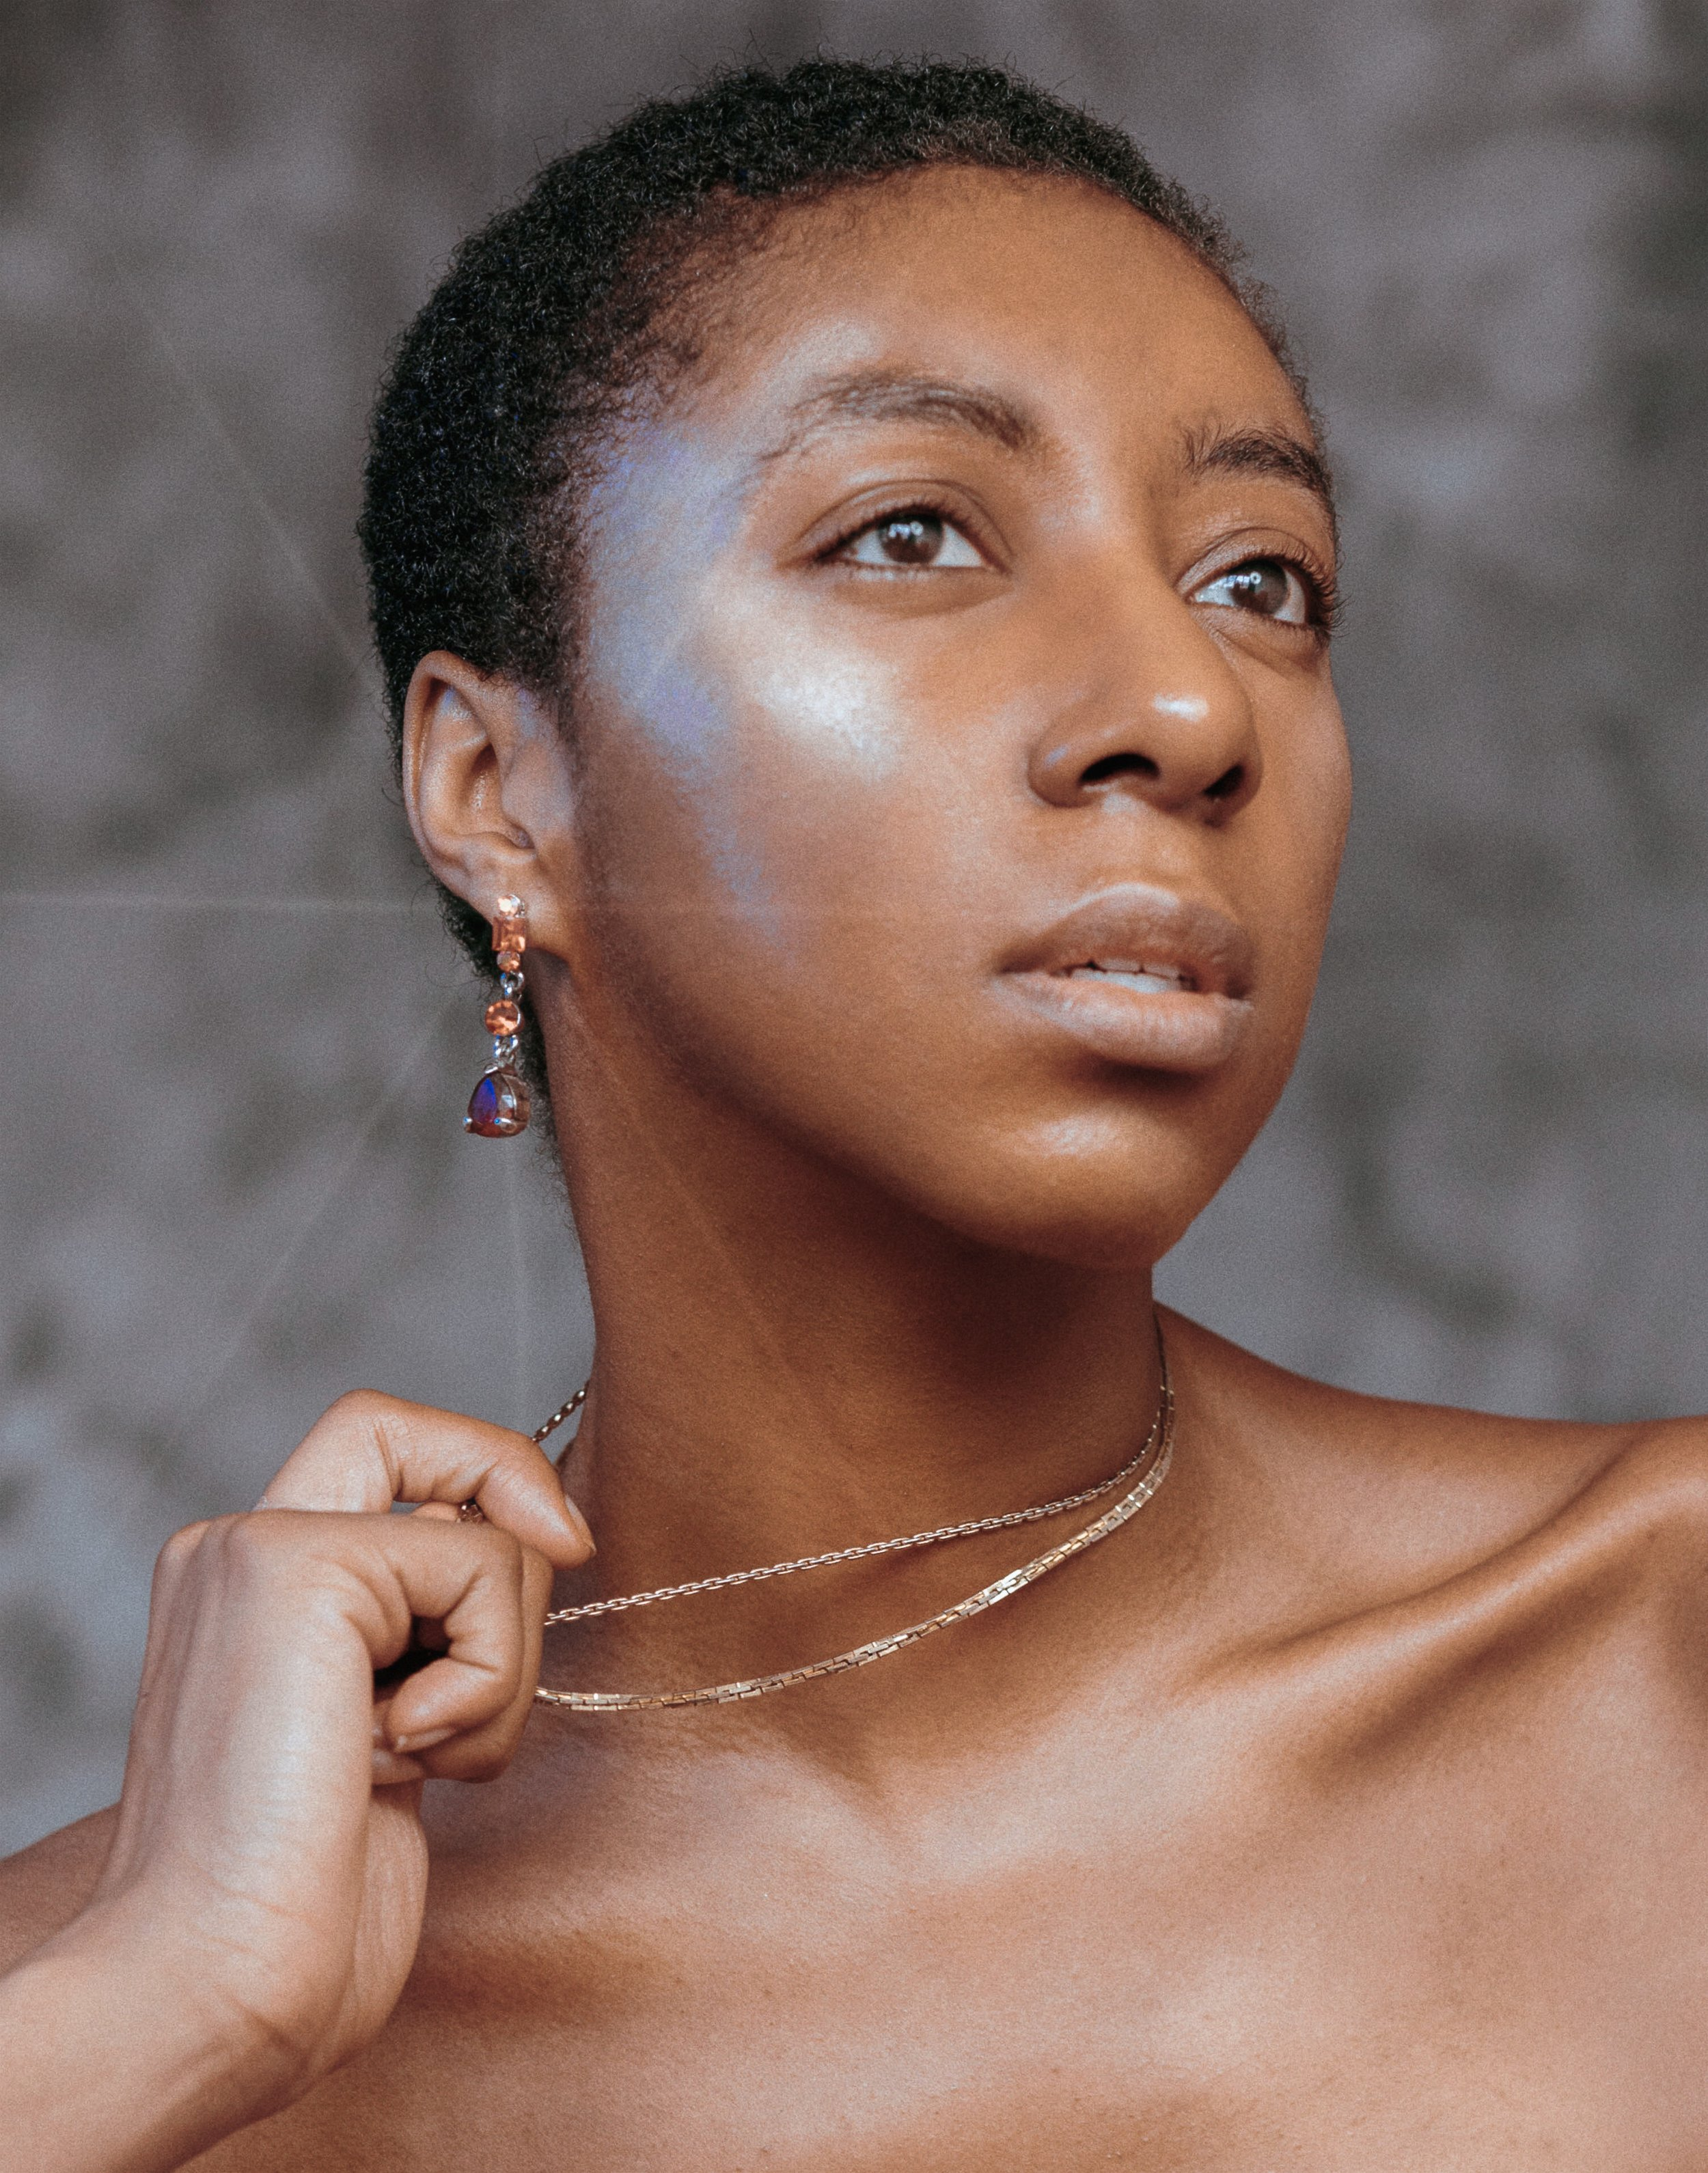 Briy   Meet Briy! Briy is a Brooklyn based model who feels connected to Breukelen Polished through it's creative names. She values taking care of your health and looking good while doing so. Her personal favorite color from Breukelen Polished is 'The Bois'